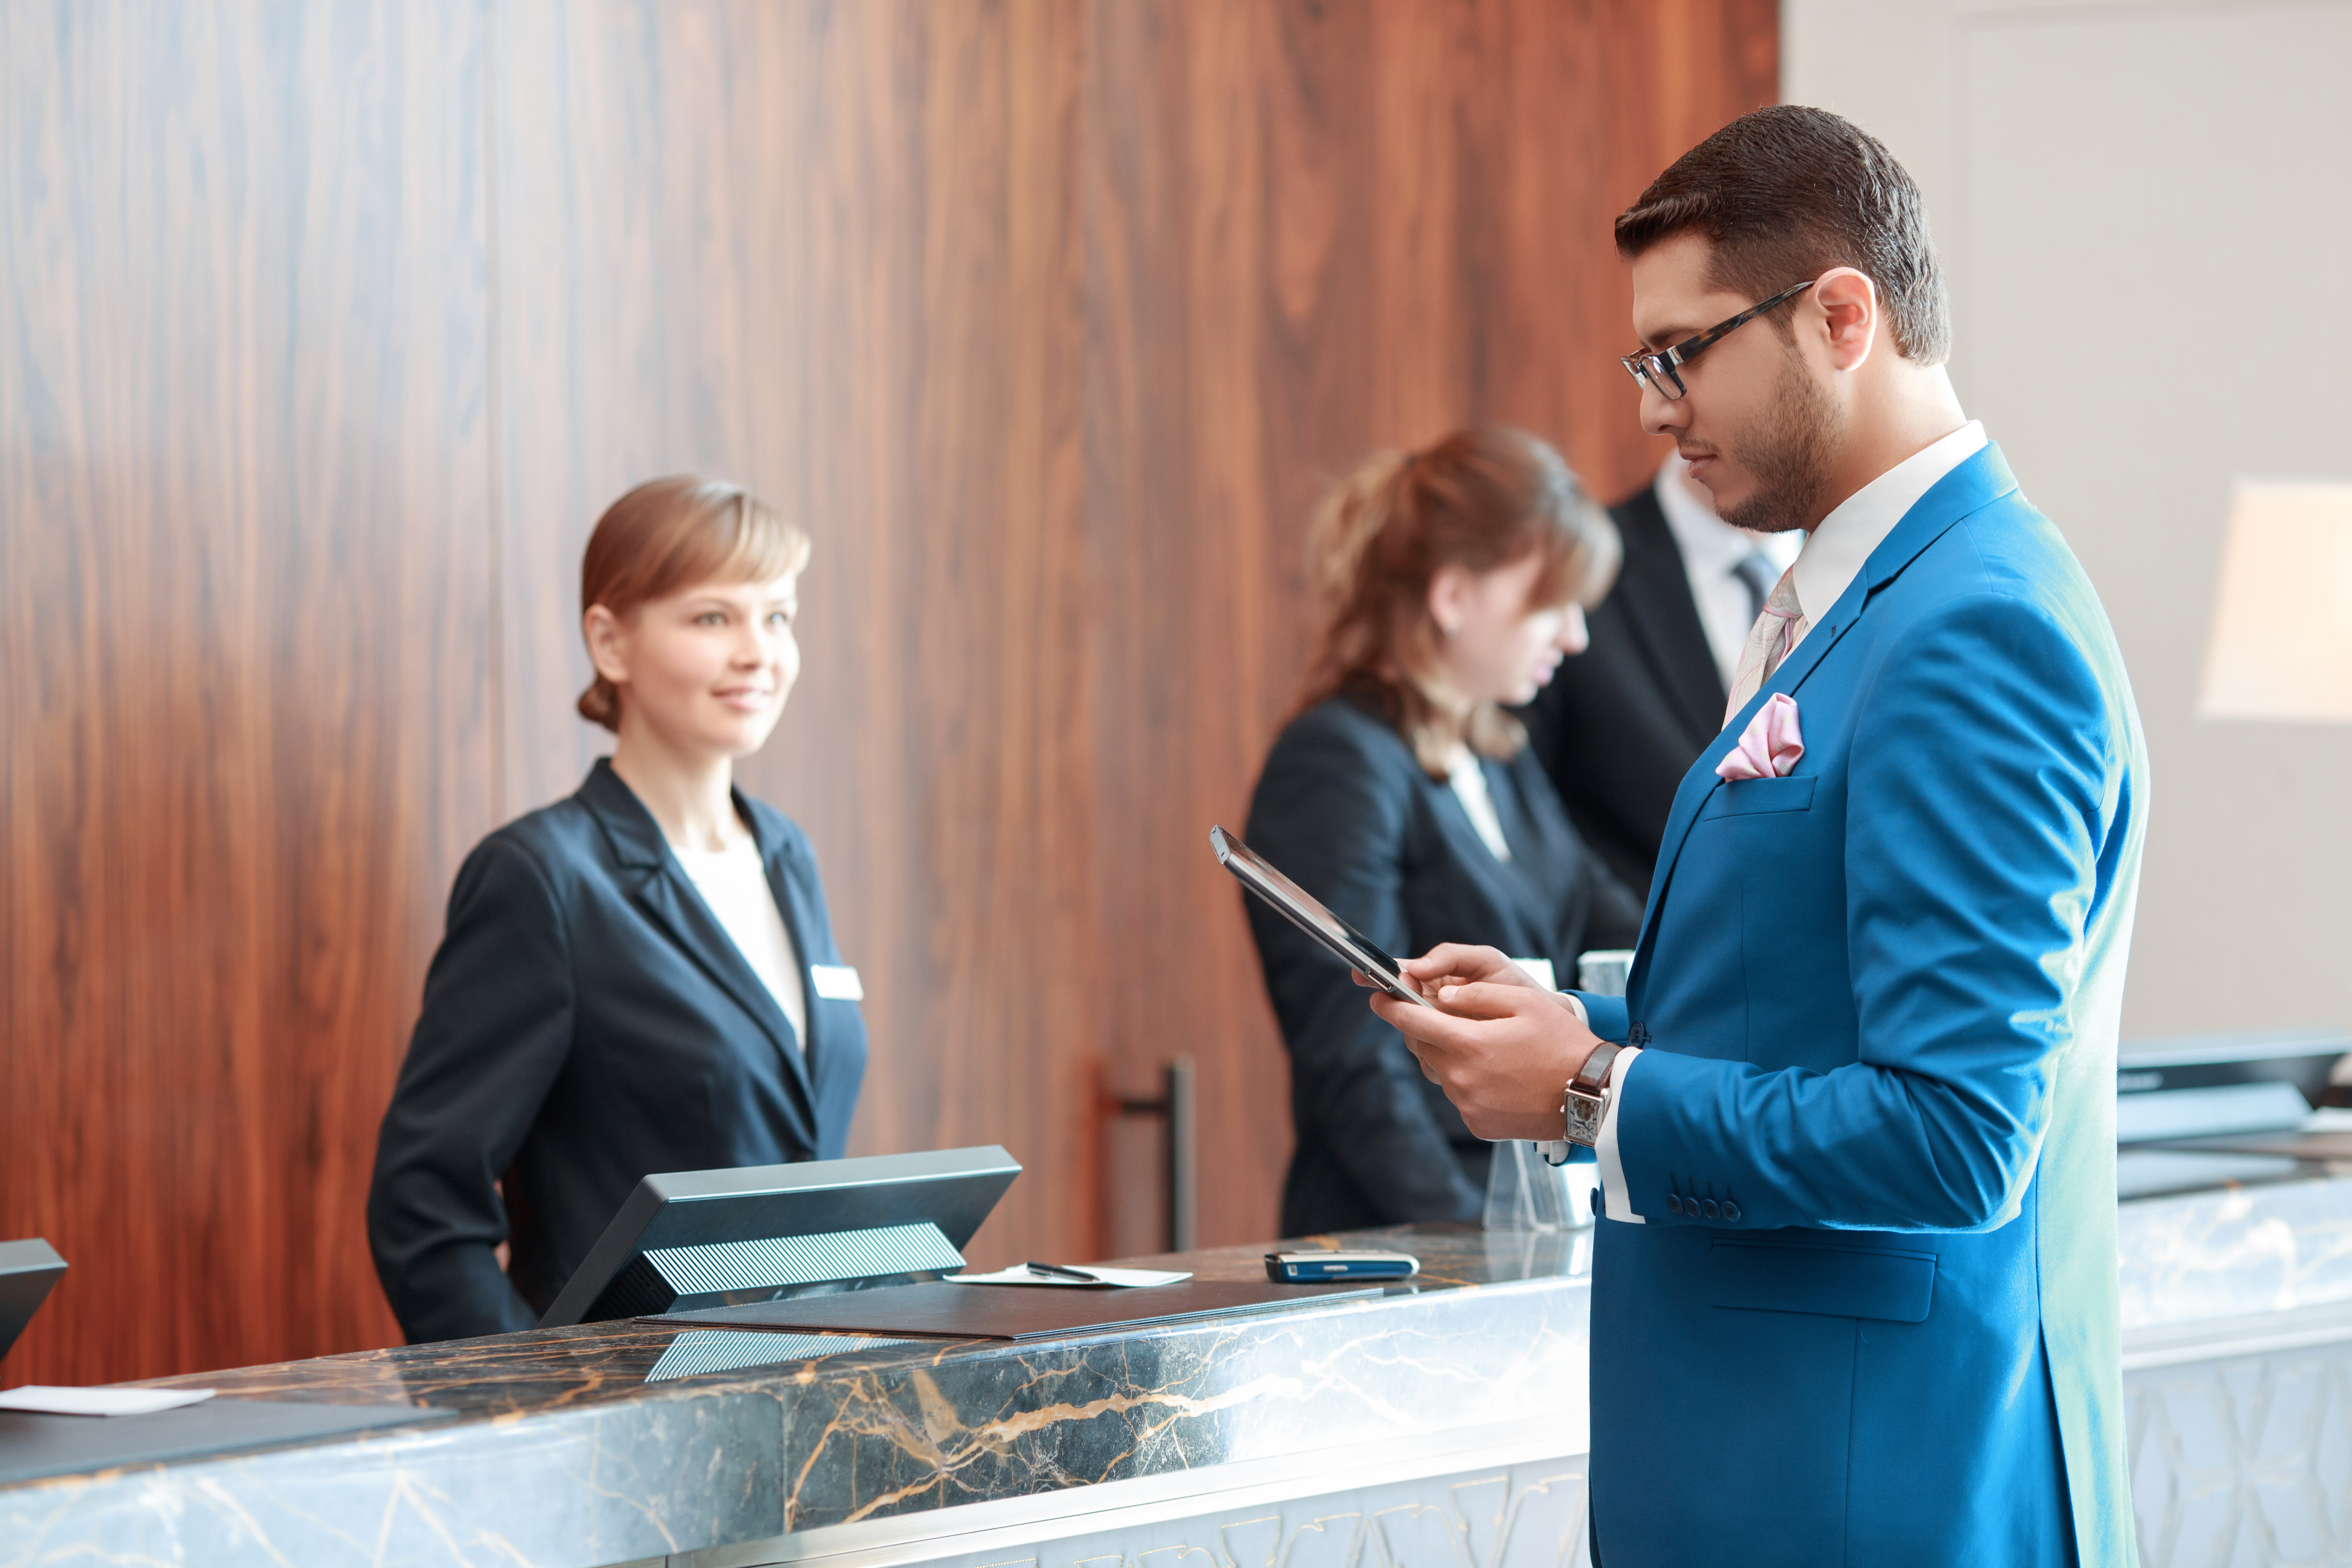 Hotel Receptionist course - The Training Terminal